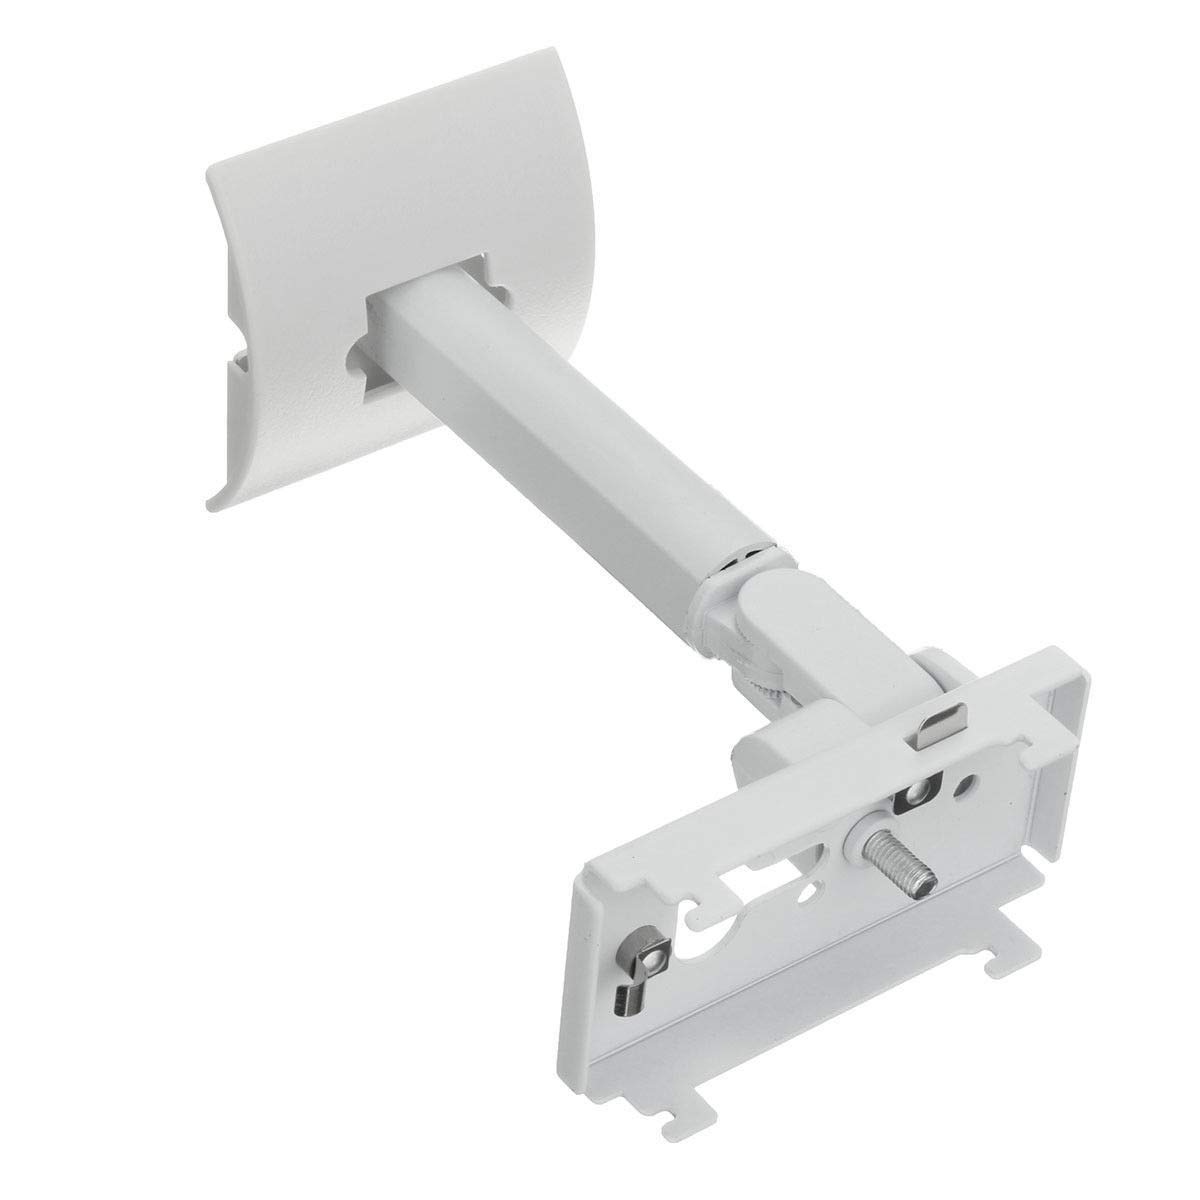 UB-20 Series II Steel Wall Mount Ceiling Bracket Stand Compatible with All Bose CineMate Lifestyle (White)